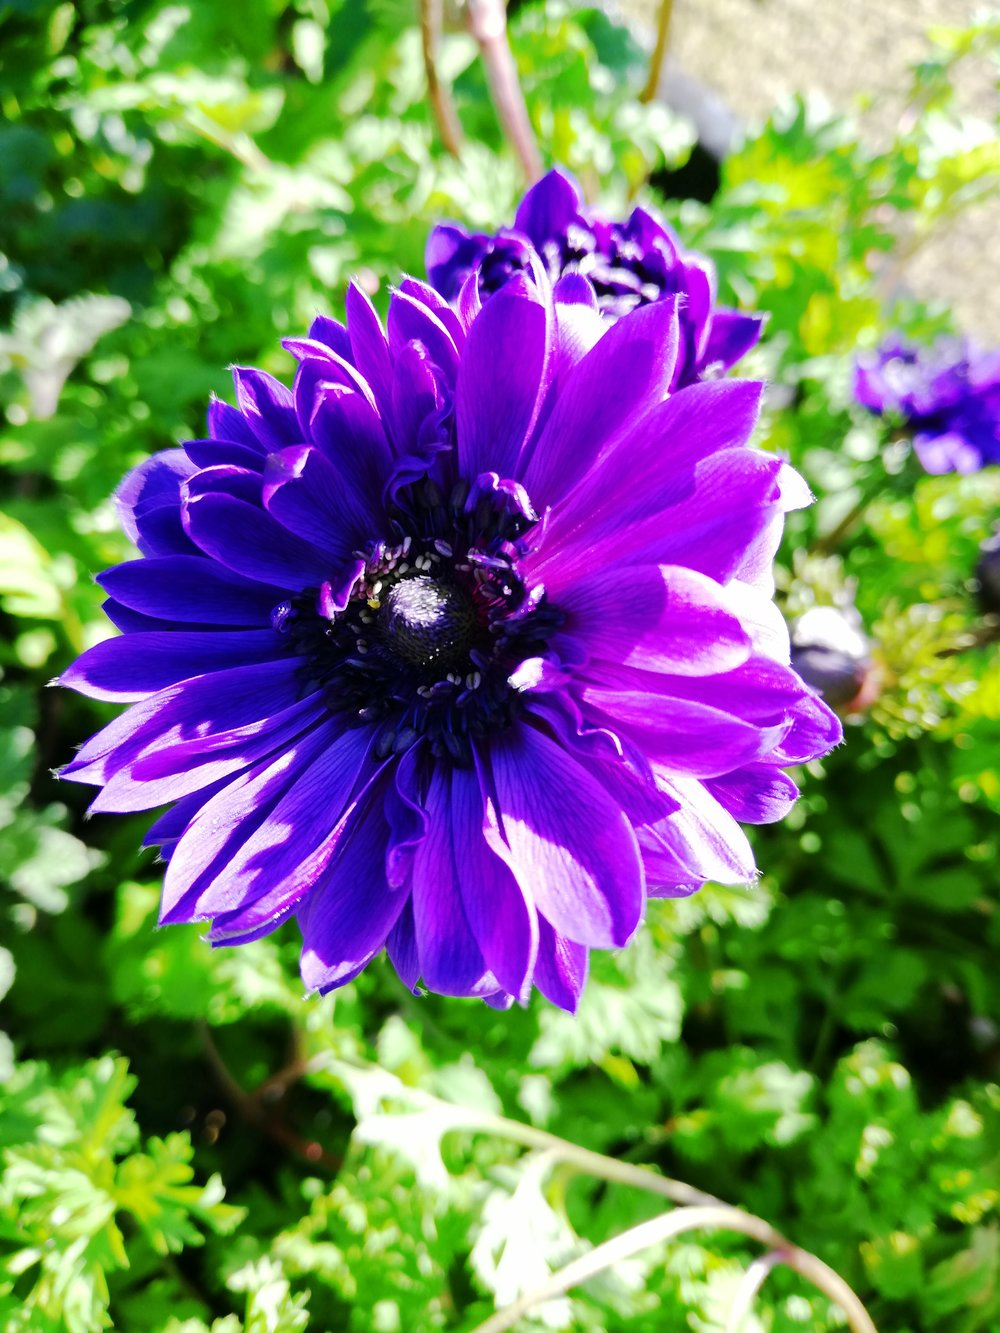 ANEMONE DE CAEN - A SUN LOVER, ATTRACTIVE TO BUTTERFLIES, EASY TO GROW IN WELL DRAINED SANDY SOIL.